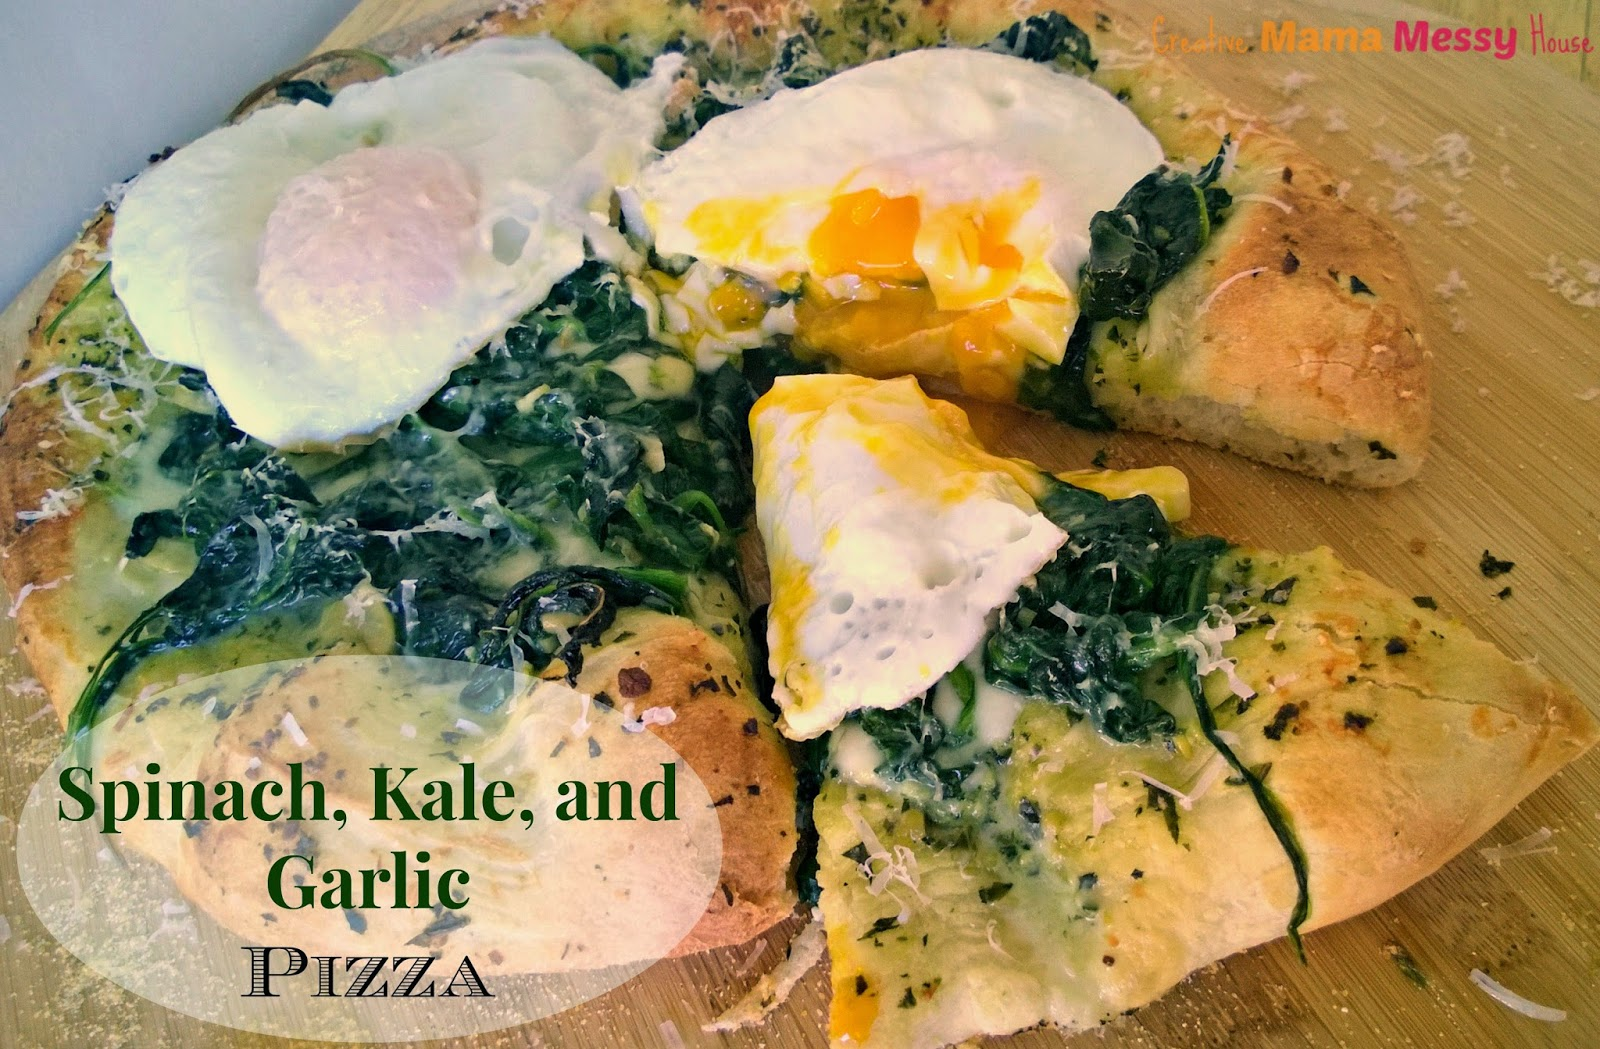 Spinach, Kale, and Garlic Pizza - with Kale Pesto recipe